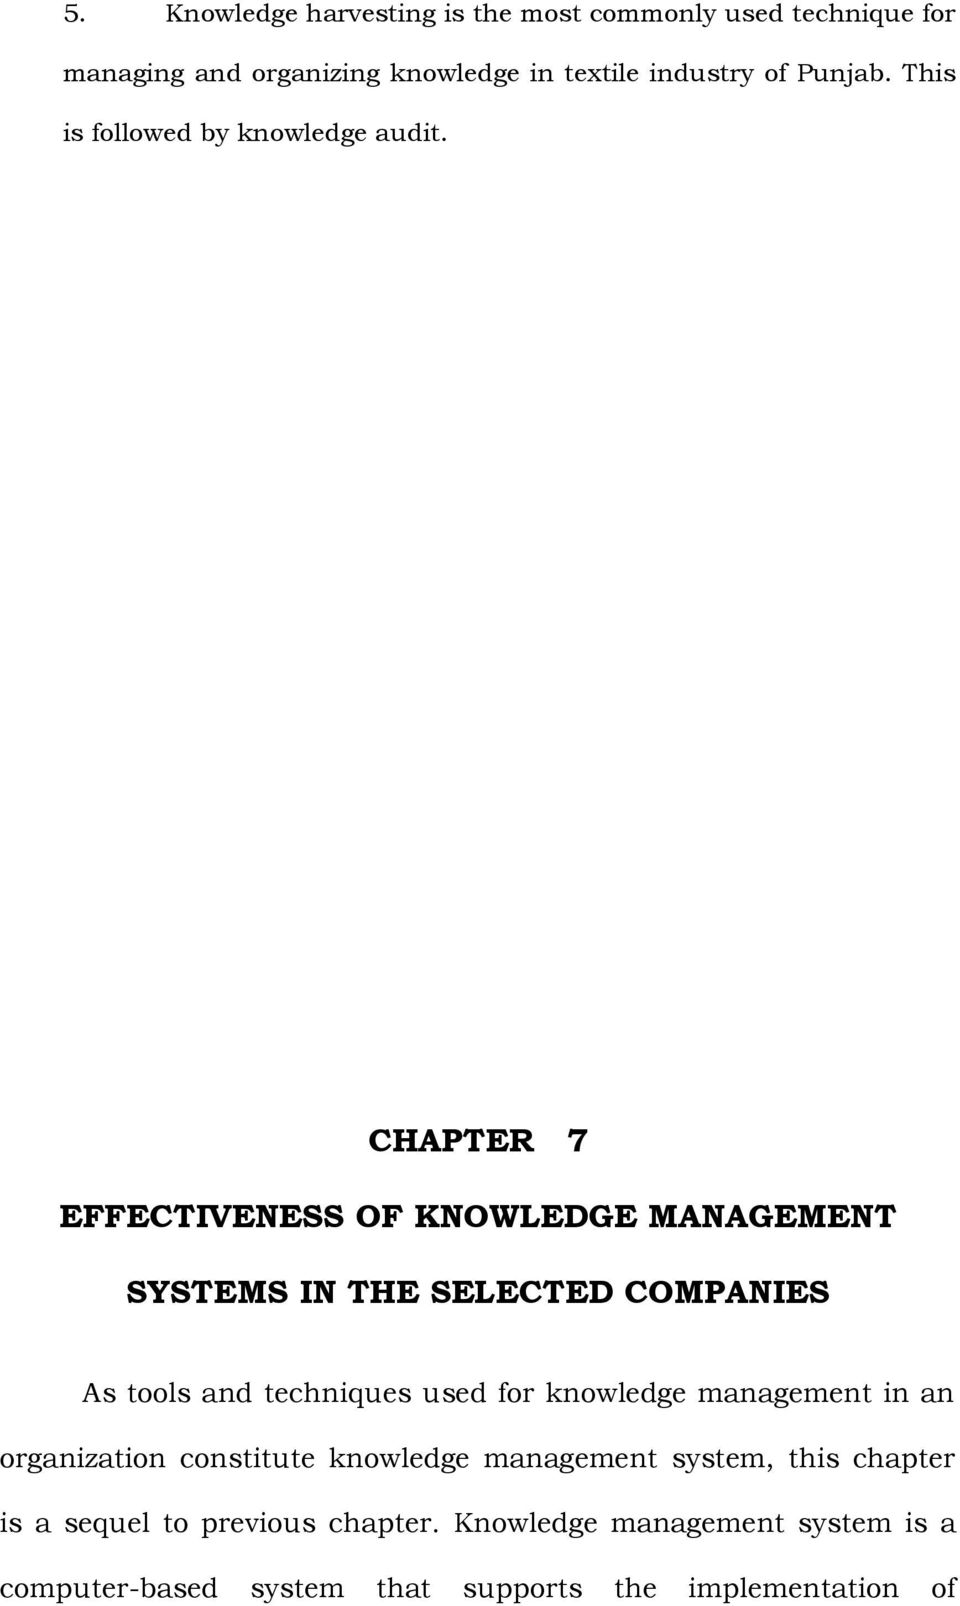 CHAPTER 7 EFFECTIVENESS OF KNOWLEDGE MANAGEMENT SYSTEMS IN THE SELECTED COMPANIES As tools and techniques used for knowledge